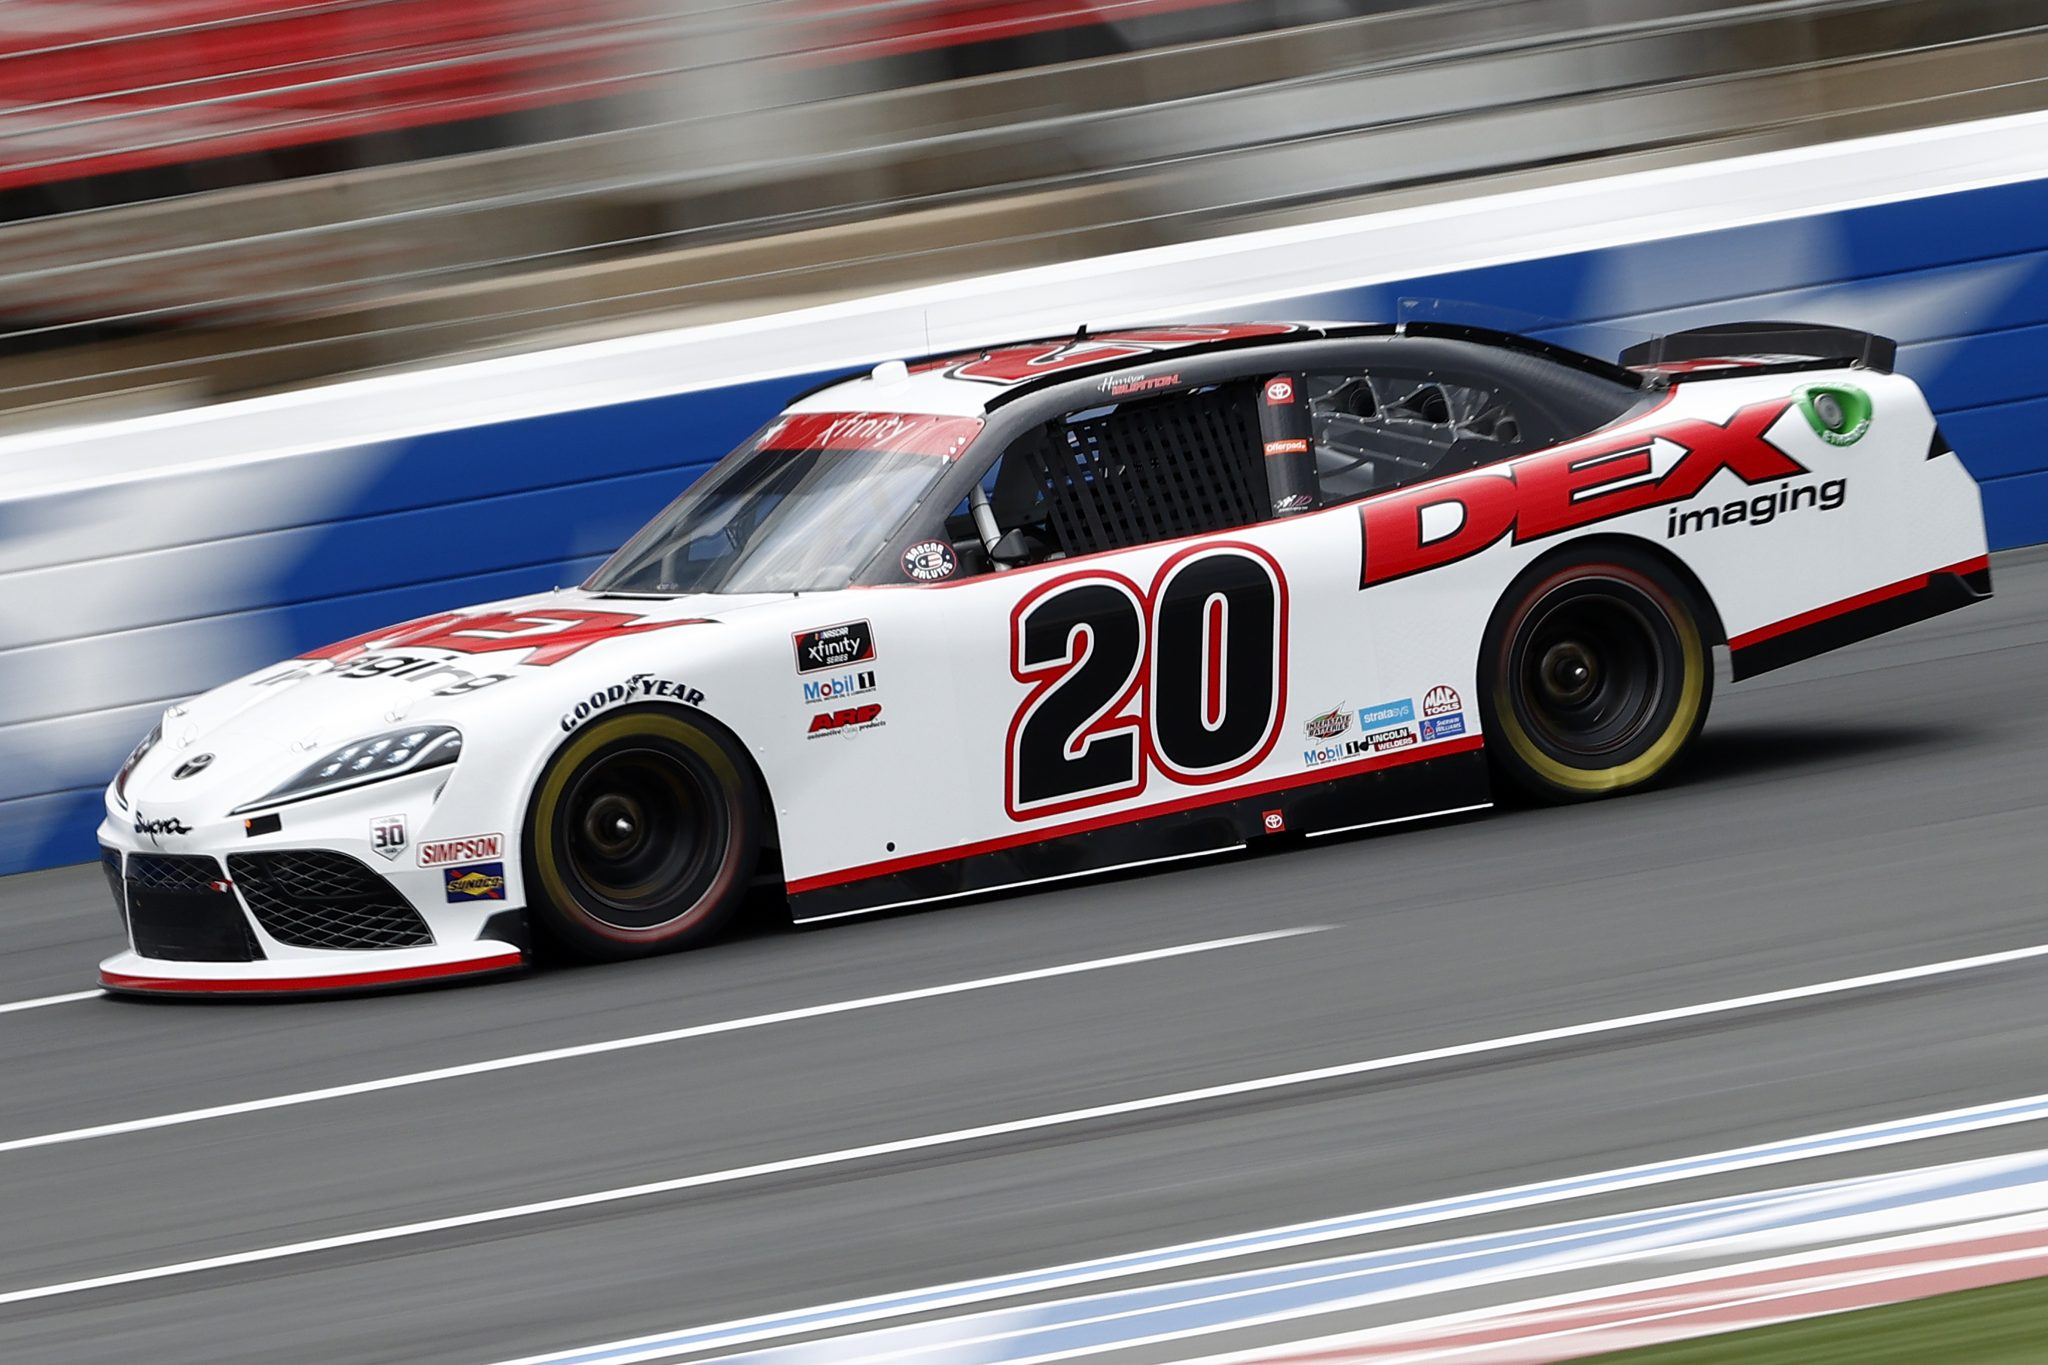 CONCORD, NORTH CAROLINA - MAY 28: Harrison Burton, driver of the #20 DEX Imaging Toyota, drives during practice for the NASCAR Xfinity Series Alsco Uniforms 300 at Charlotte Motor Speedway on May 28, 2021 in Concord, North Carolina. (Photo by Maddie Meyer/Getty Images) | Getty Images